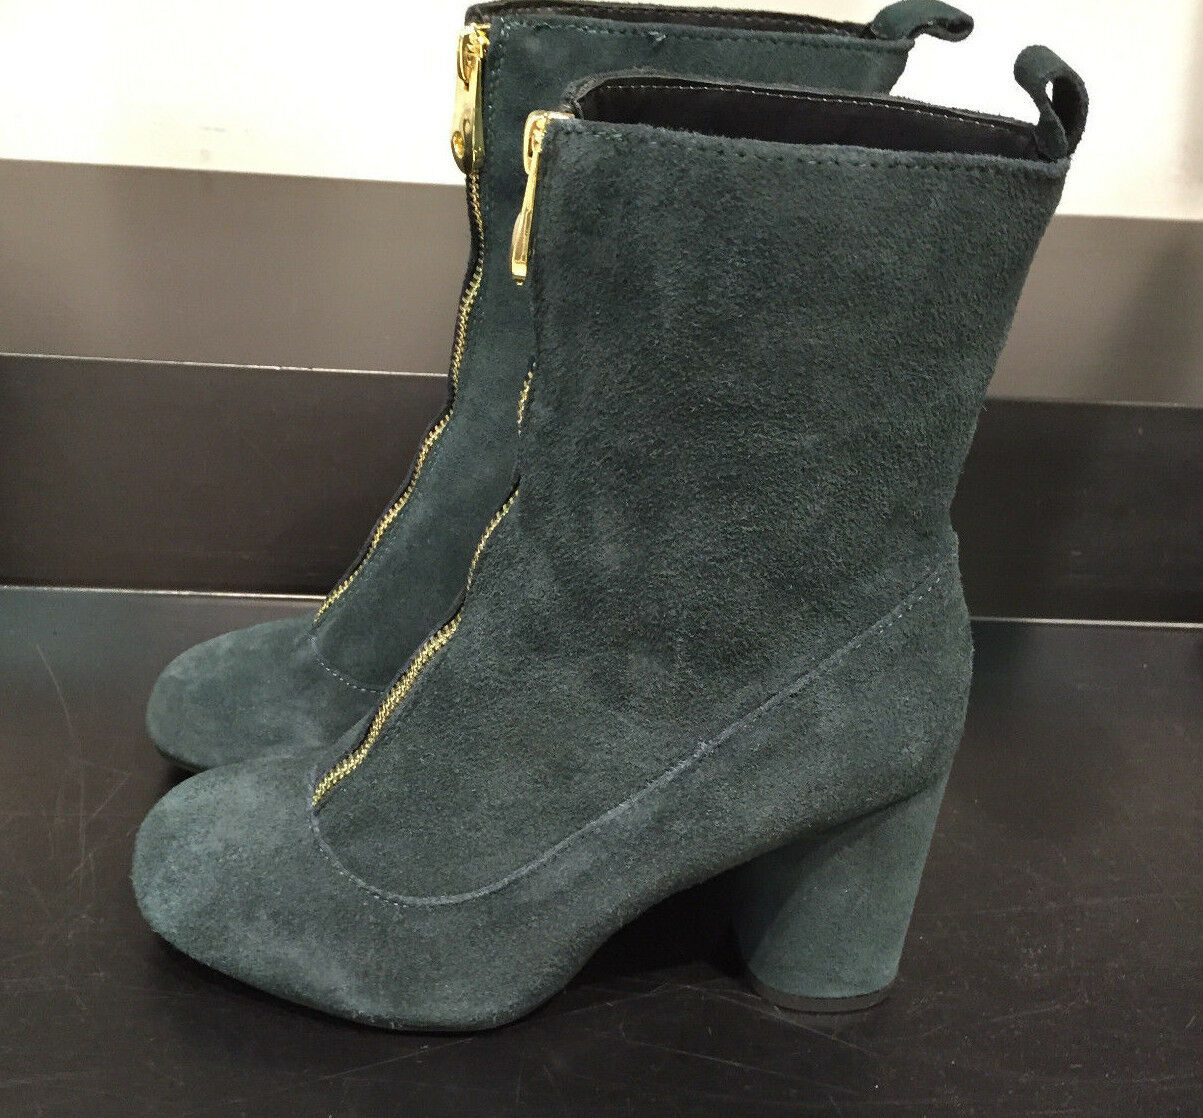 ZARANEW Damenschuhe RETRO HIGH HEEL BOOTIES WITH ZIP 37-40 GREEN 37-40 ZIP Ref. 7114/001 f88c94